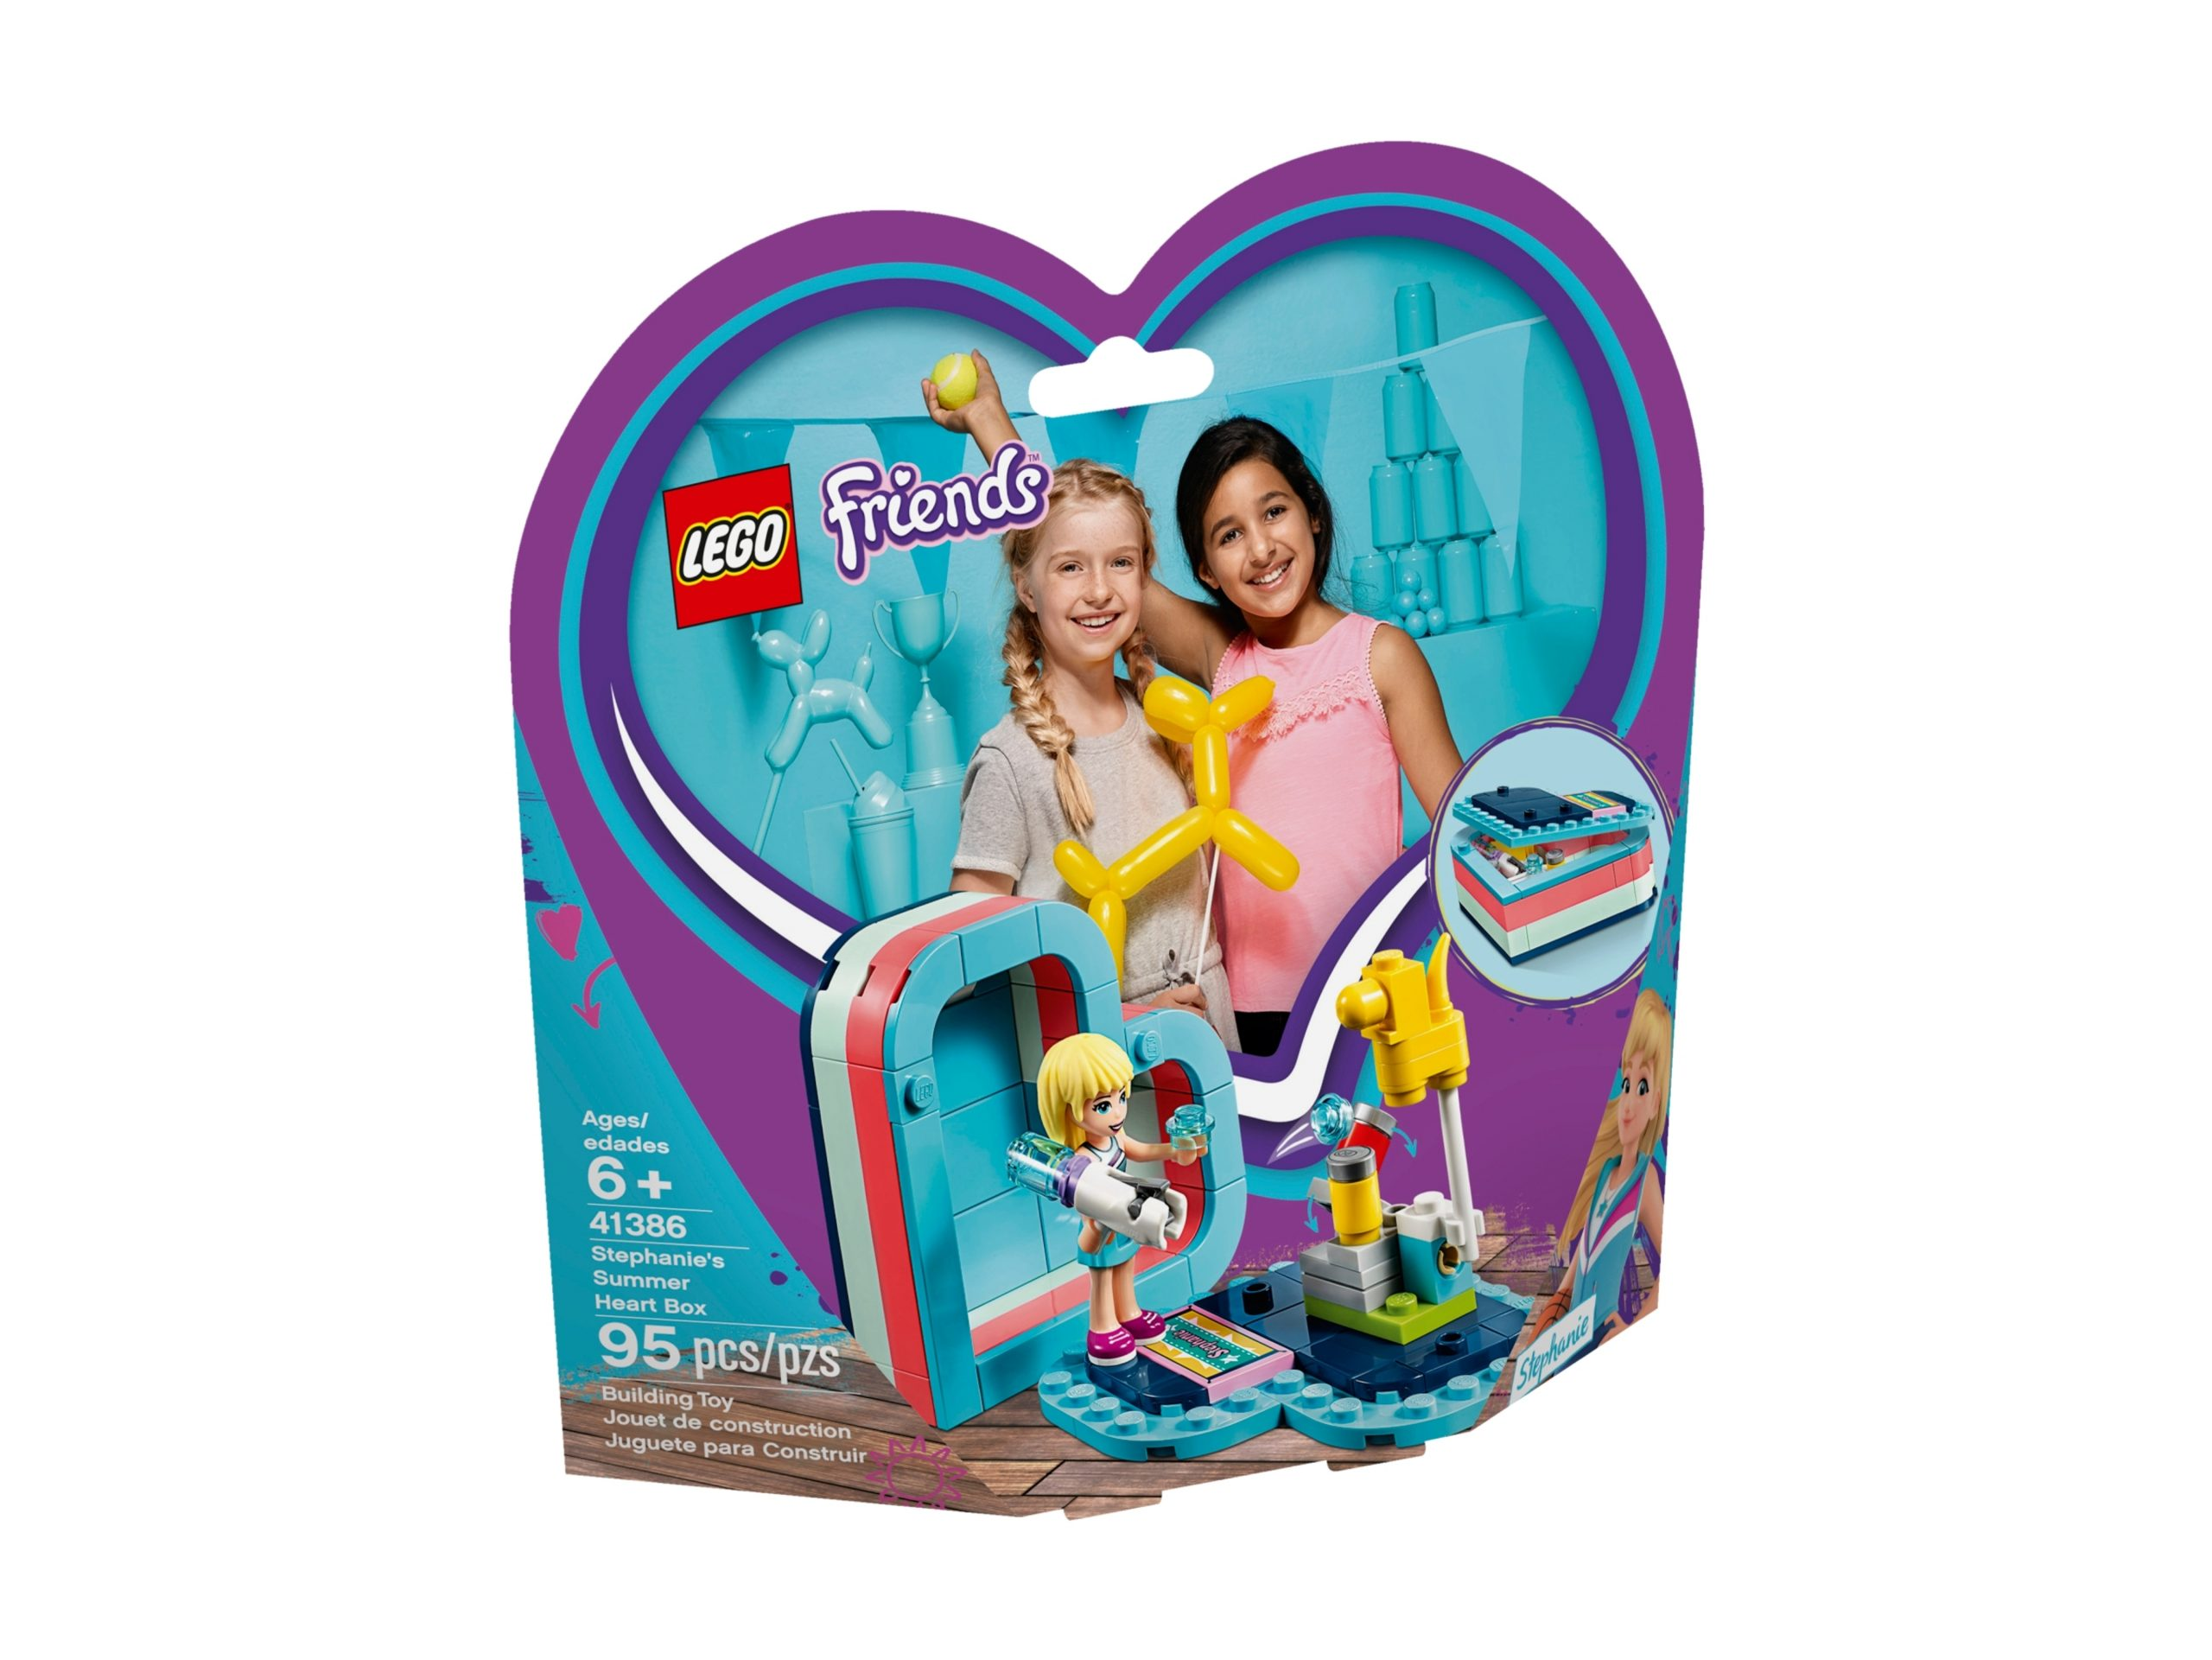 lego 41386 stephanies summer heart box scaled